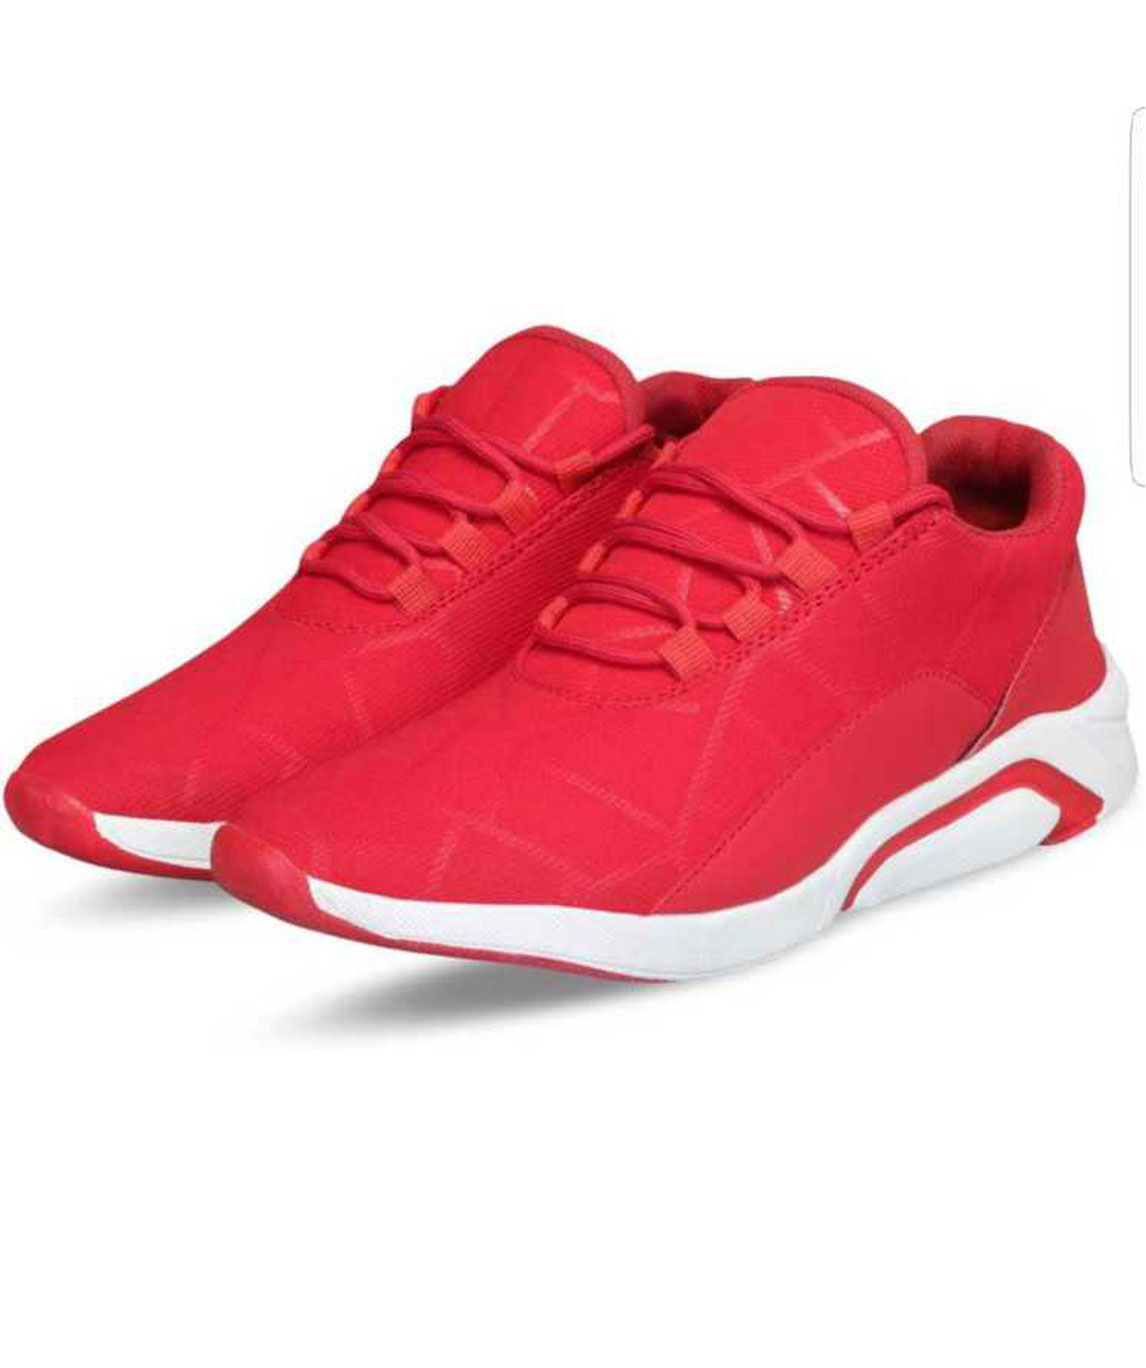 STAR SPORTS SNEAKERS OUTDOORS FOR MEN (RED, WHITE)